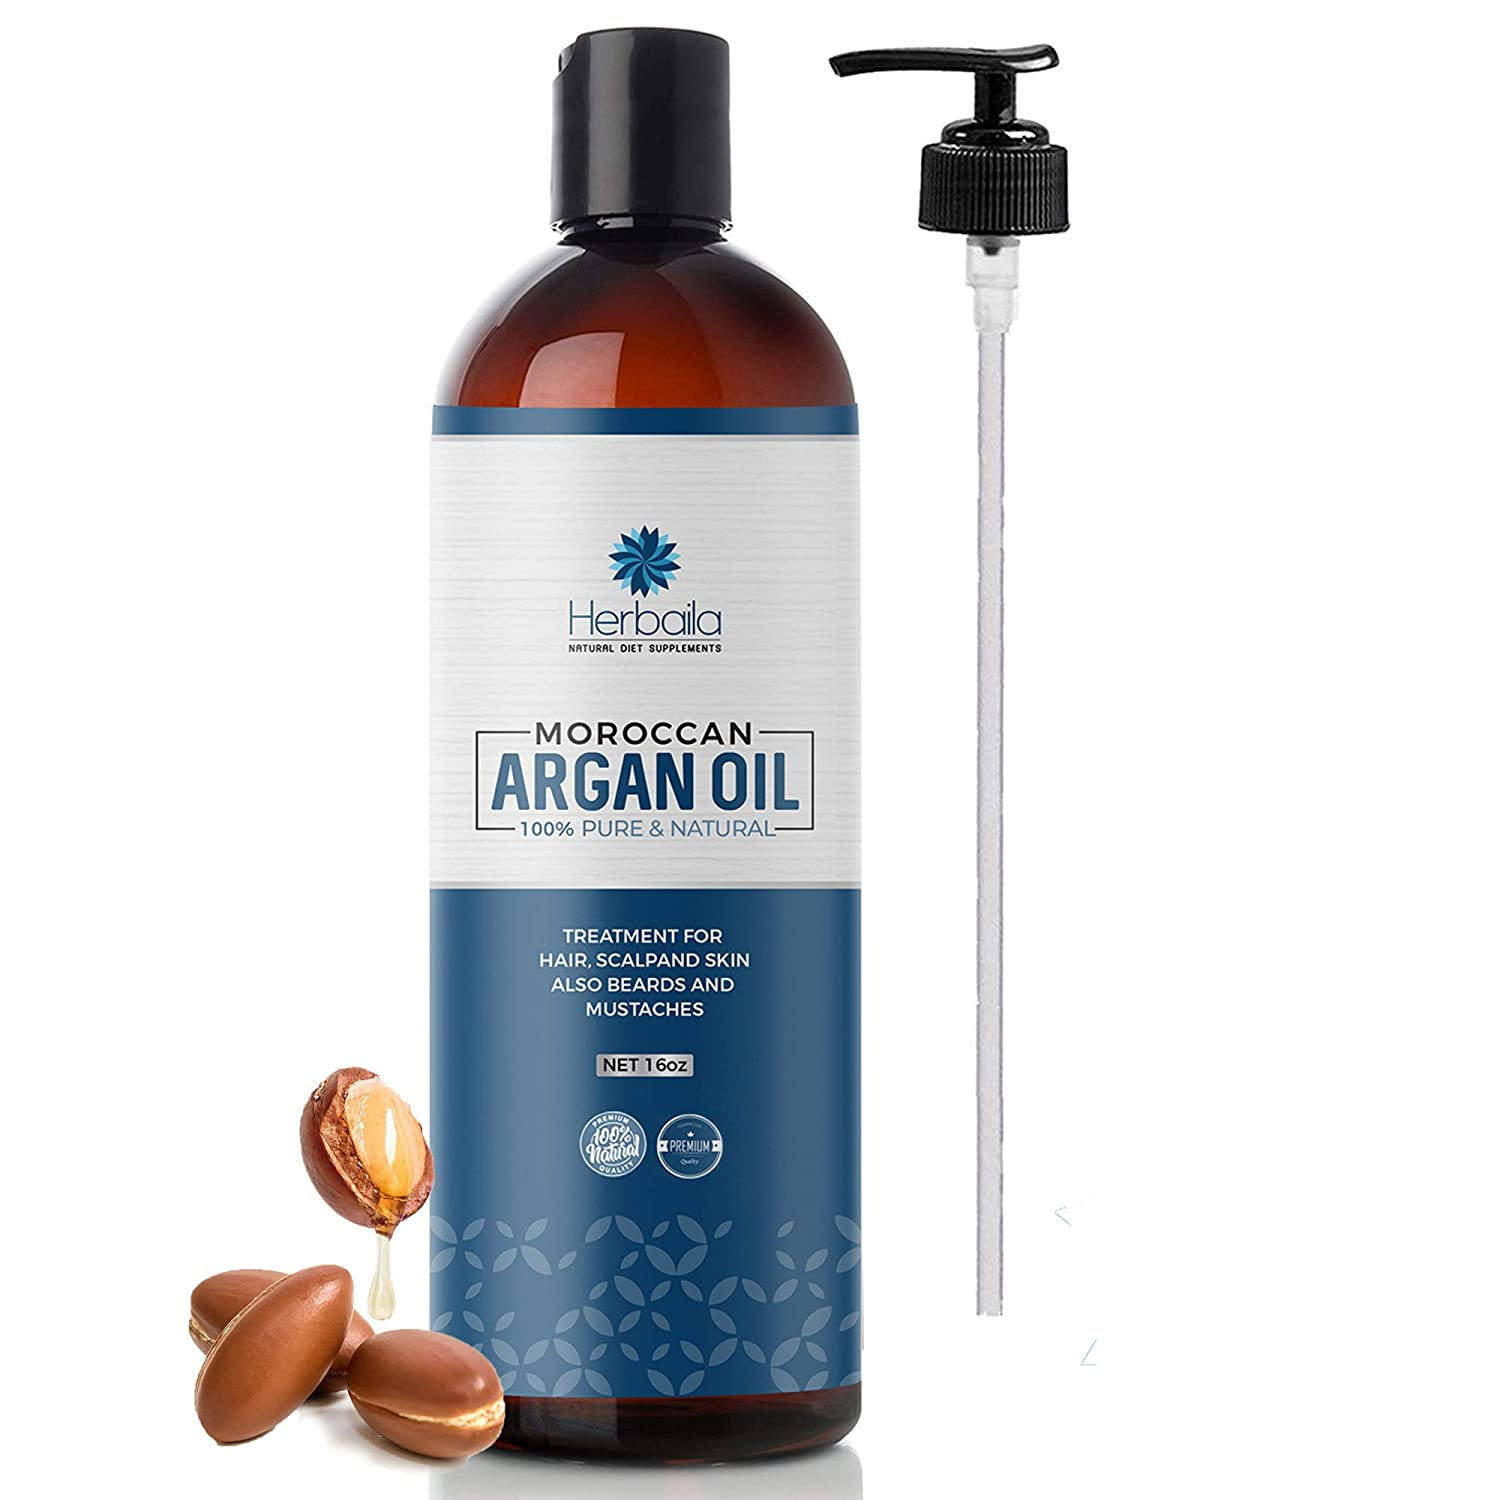 Moroccan Argan Oil 16oz, Cold Pressed Extra Virgin Oil for Hair, Skin, Face, Nails, Beard & Eyelashes, Anti-Aging Beauty Oil, 100% Pure Moisturizing Hair Growth Oil with Vitamin E